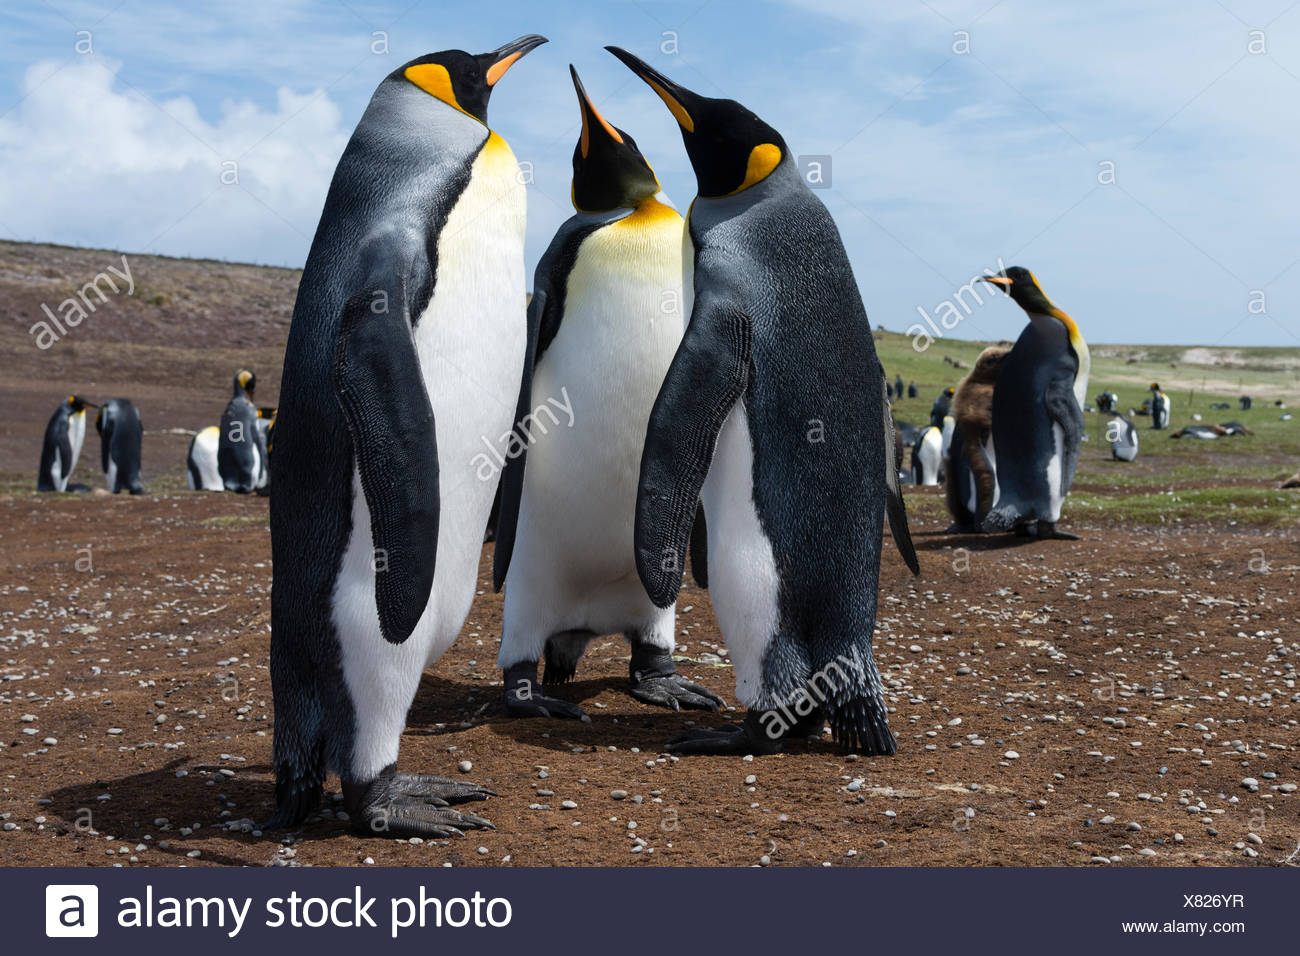 King penguins, Aptenodytes patagonica, at a colony. - Stock Image